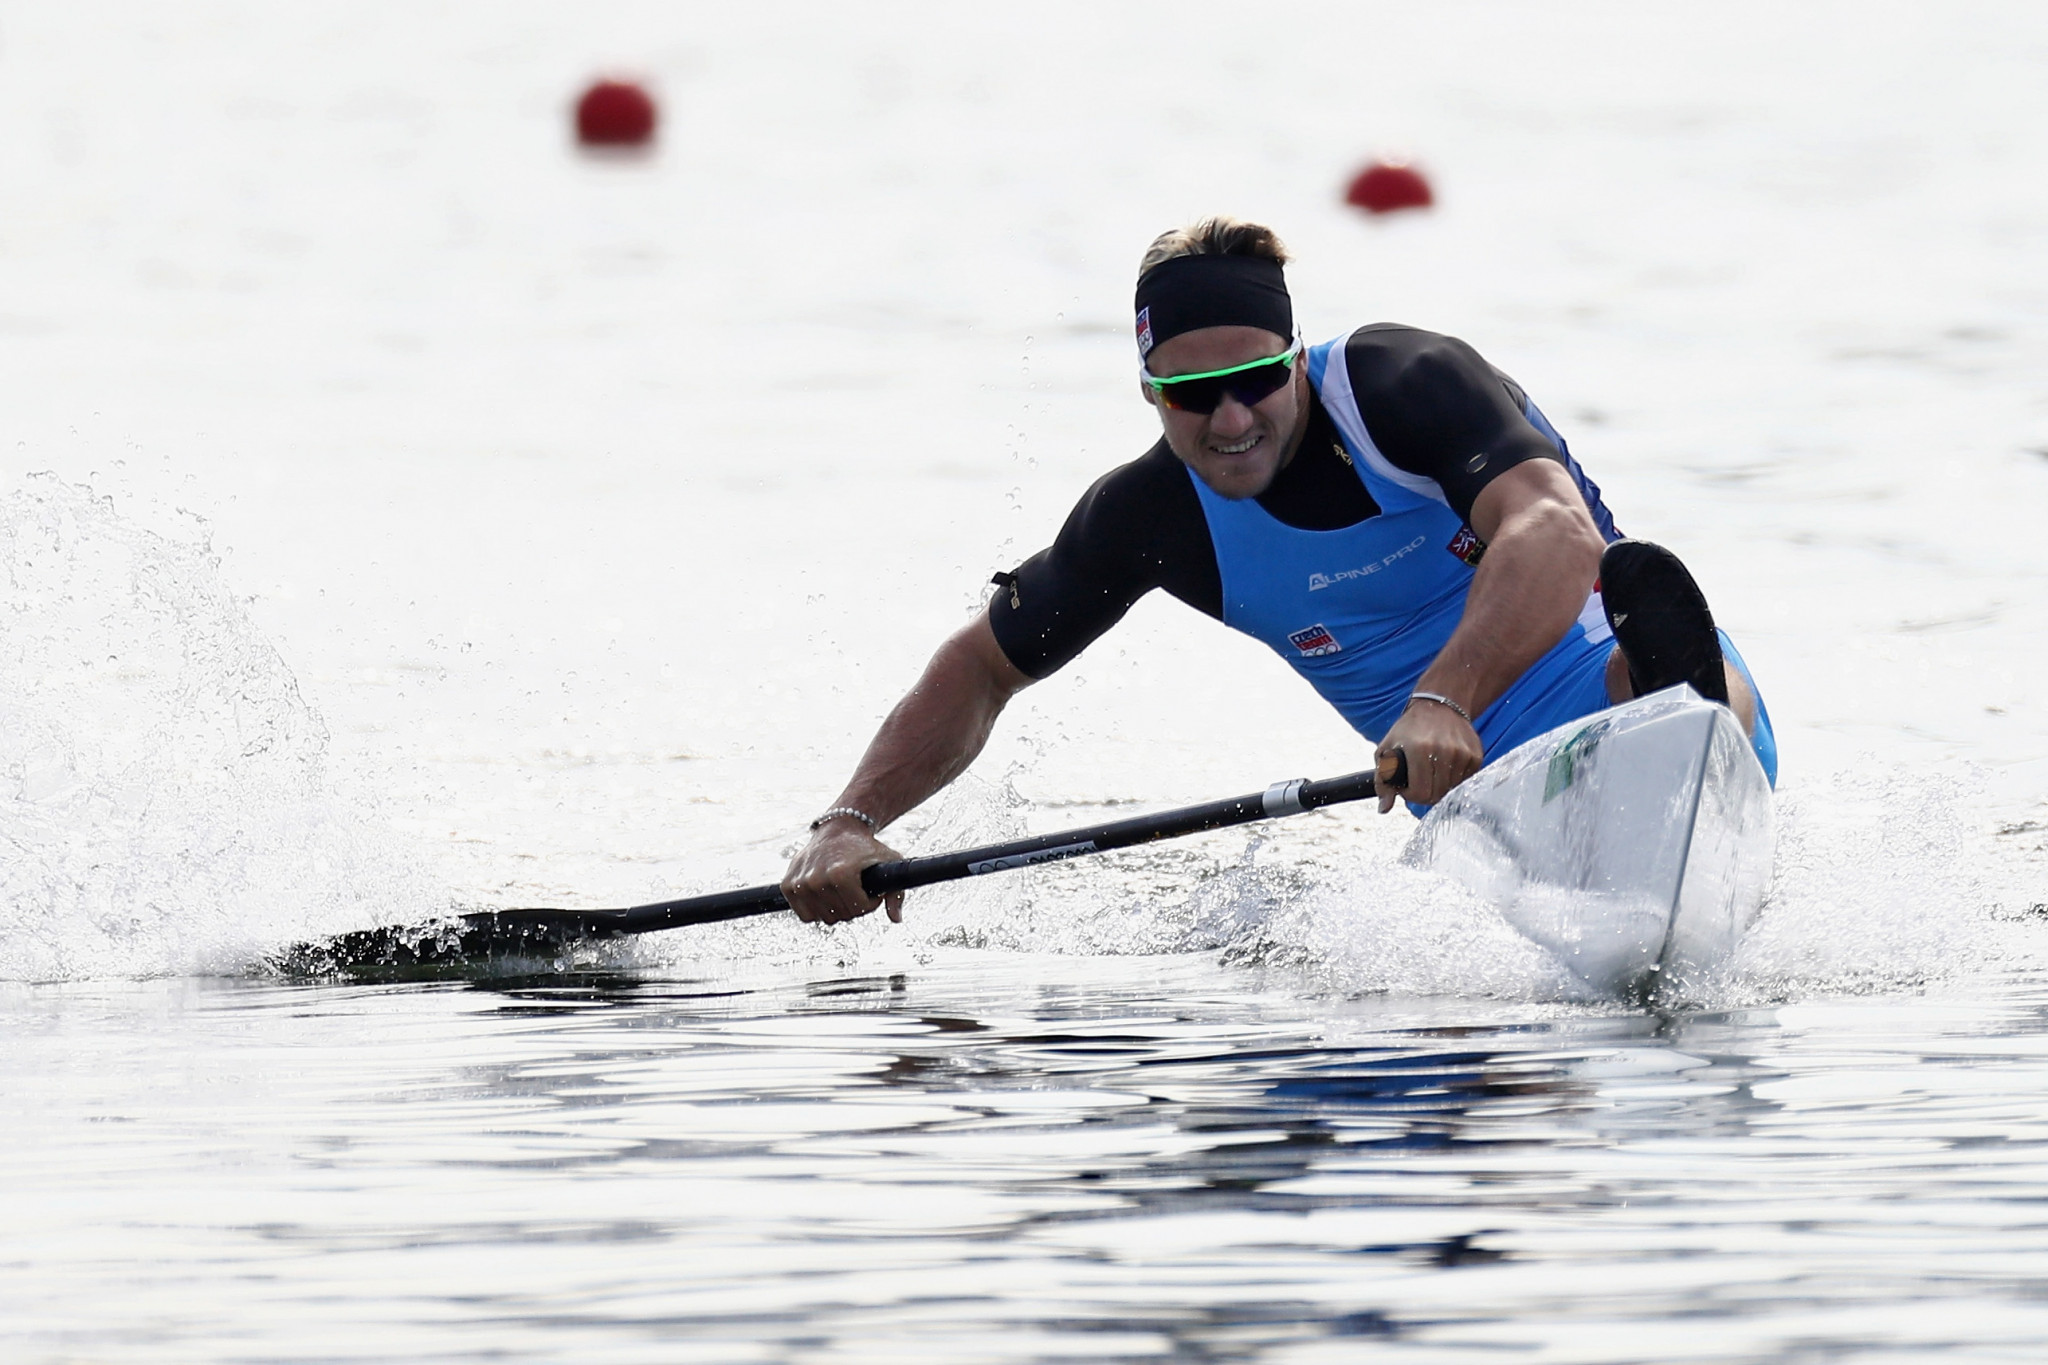 Martin Fuksa won a high quality C1 1,000m dual today at the ICF Canoe Sprint World Cup ©Getty Images